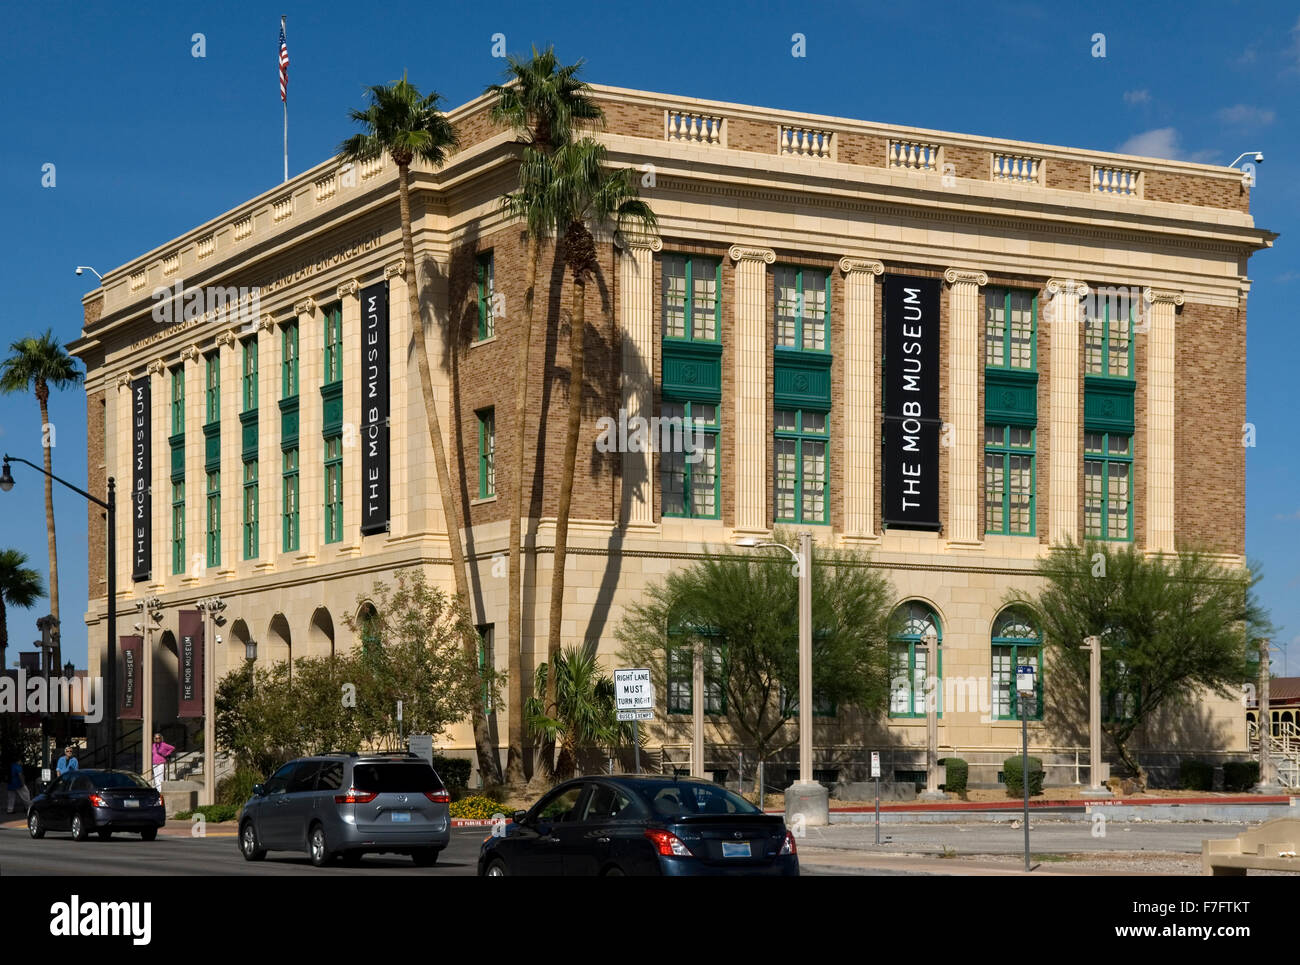 the mob museum las vegas stock photos the mob museum las vegas stock images alamy. Black Bedroom Furniture Sets. Home Design Ideas